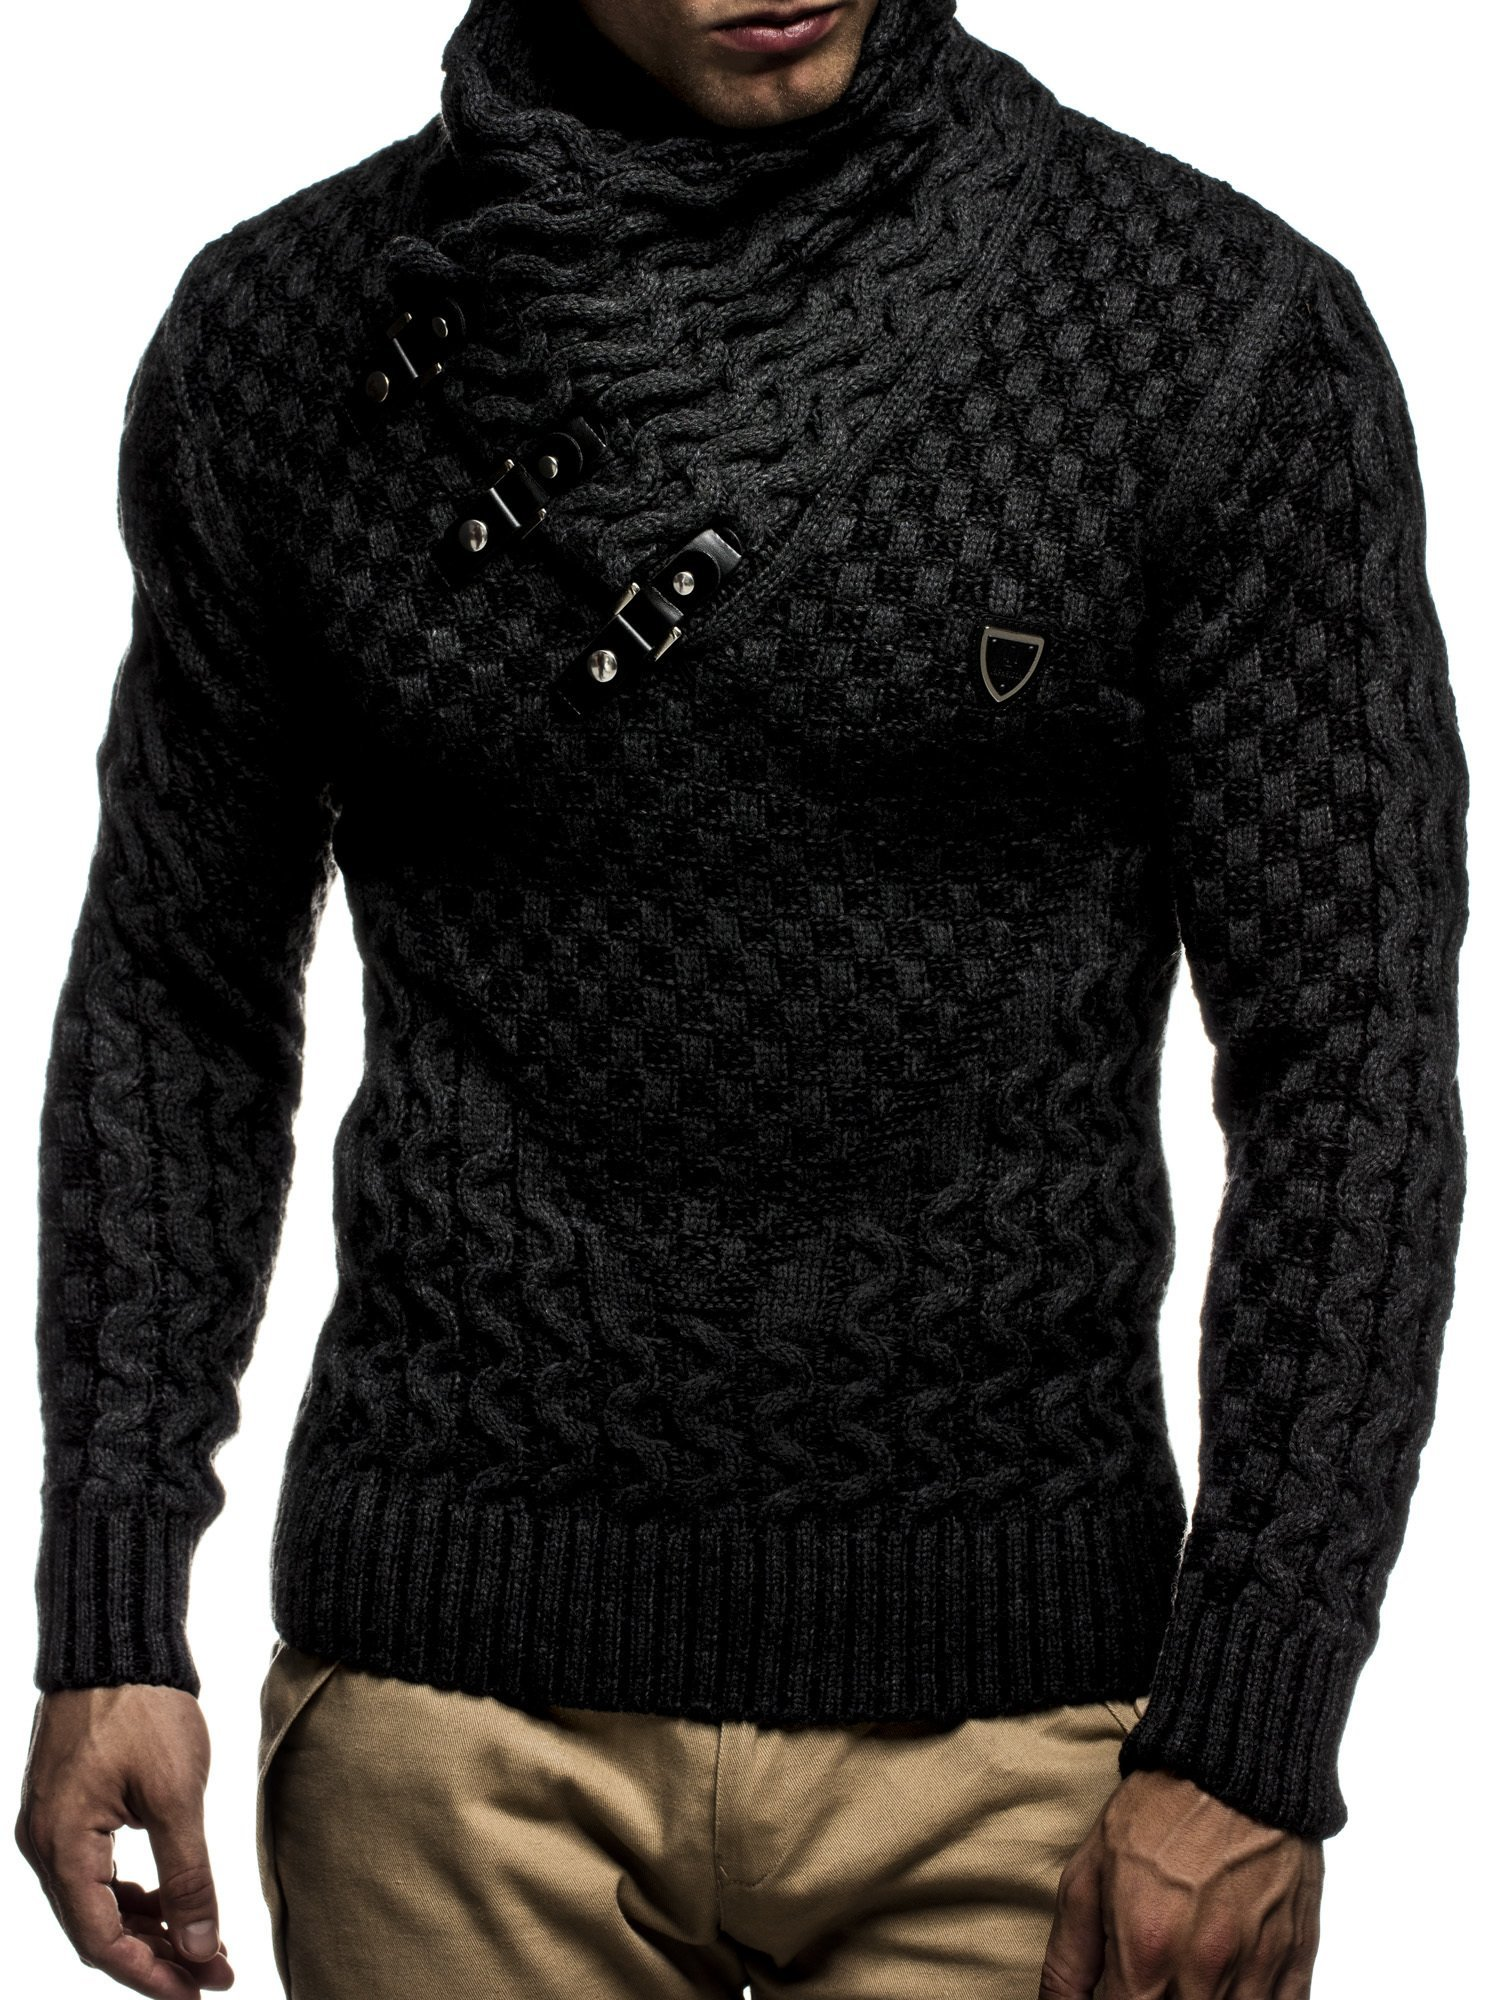 Leif Nelson LN5255 Men's Pullover With Faux Leather Accents Black Anthracite Size Small